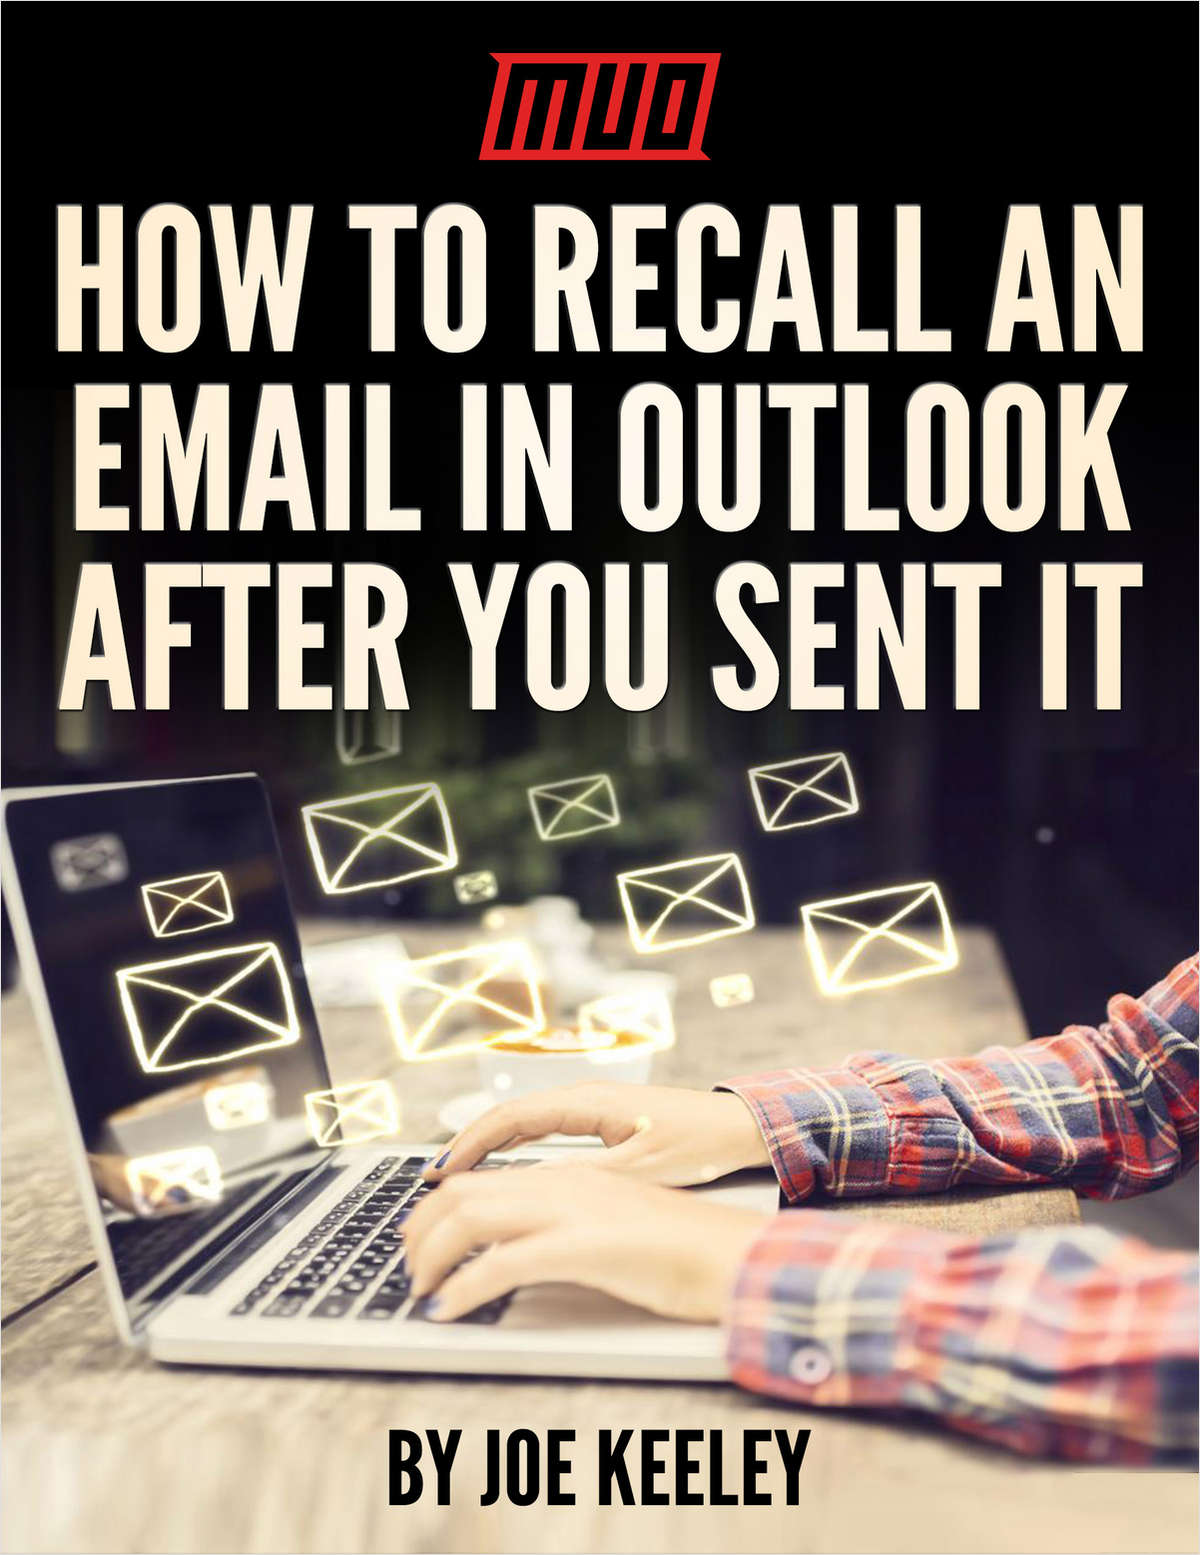 How to Recall an Email in Outlook After You Sent It